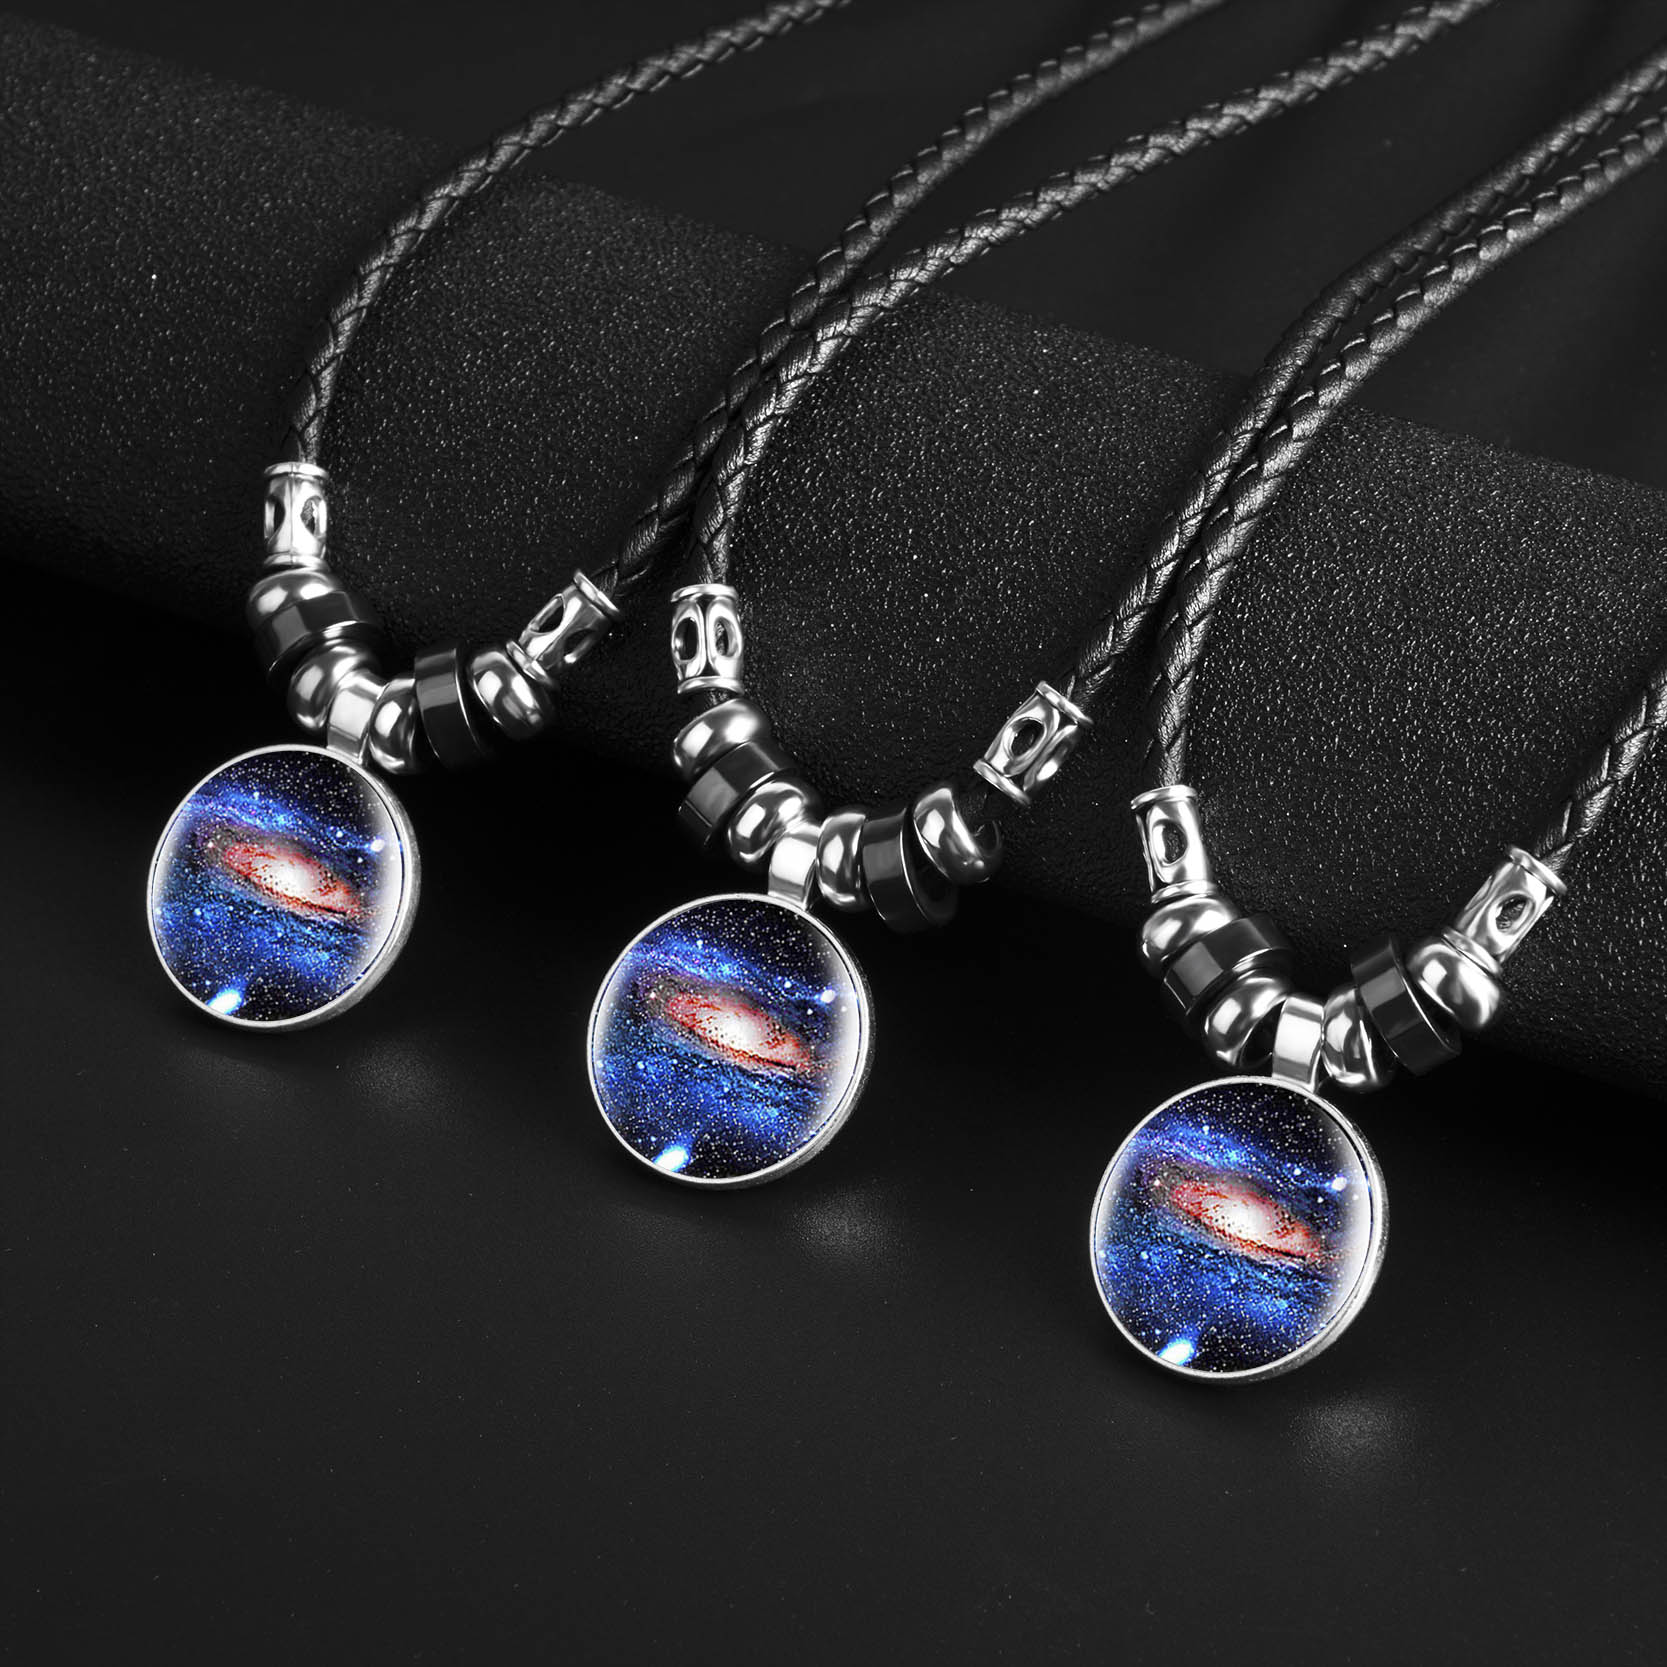 KCALOE 2019 Men Leather Necklaces Glass Nebula Galaxy Moon Pendants Punk Vintage Black Rope Chain Male Women Unisex Jewelry in Pendant Necklaces from Jewelry Accessories